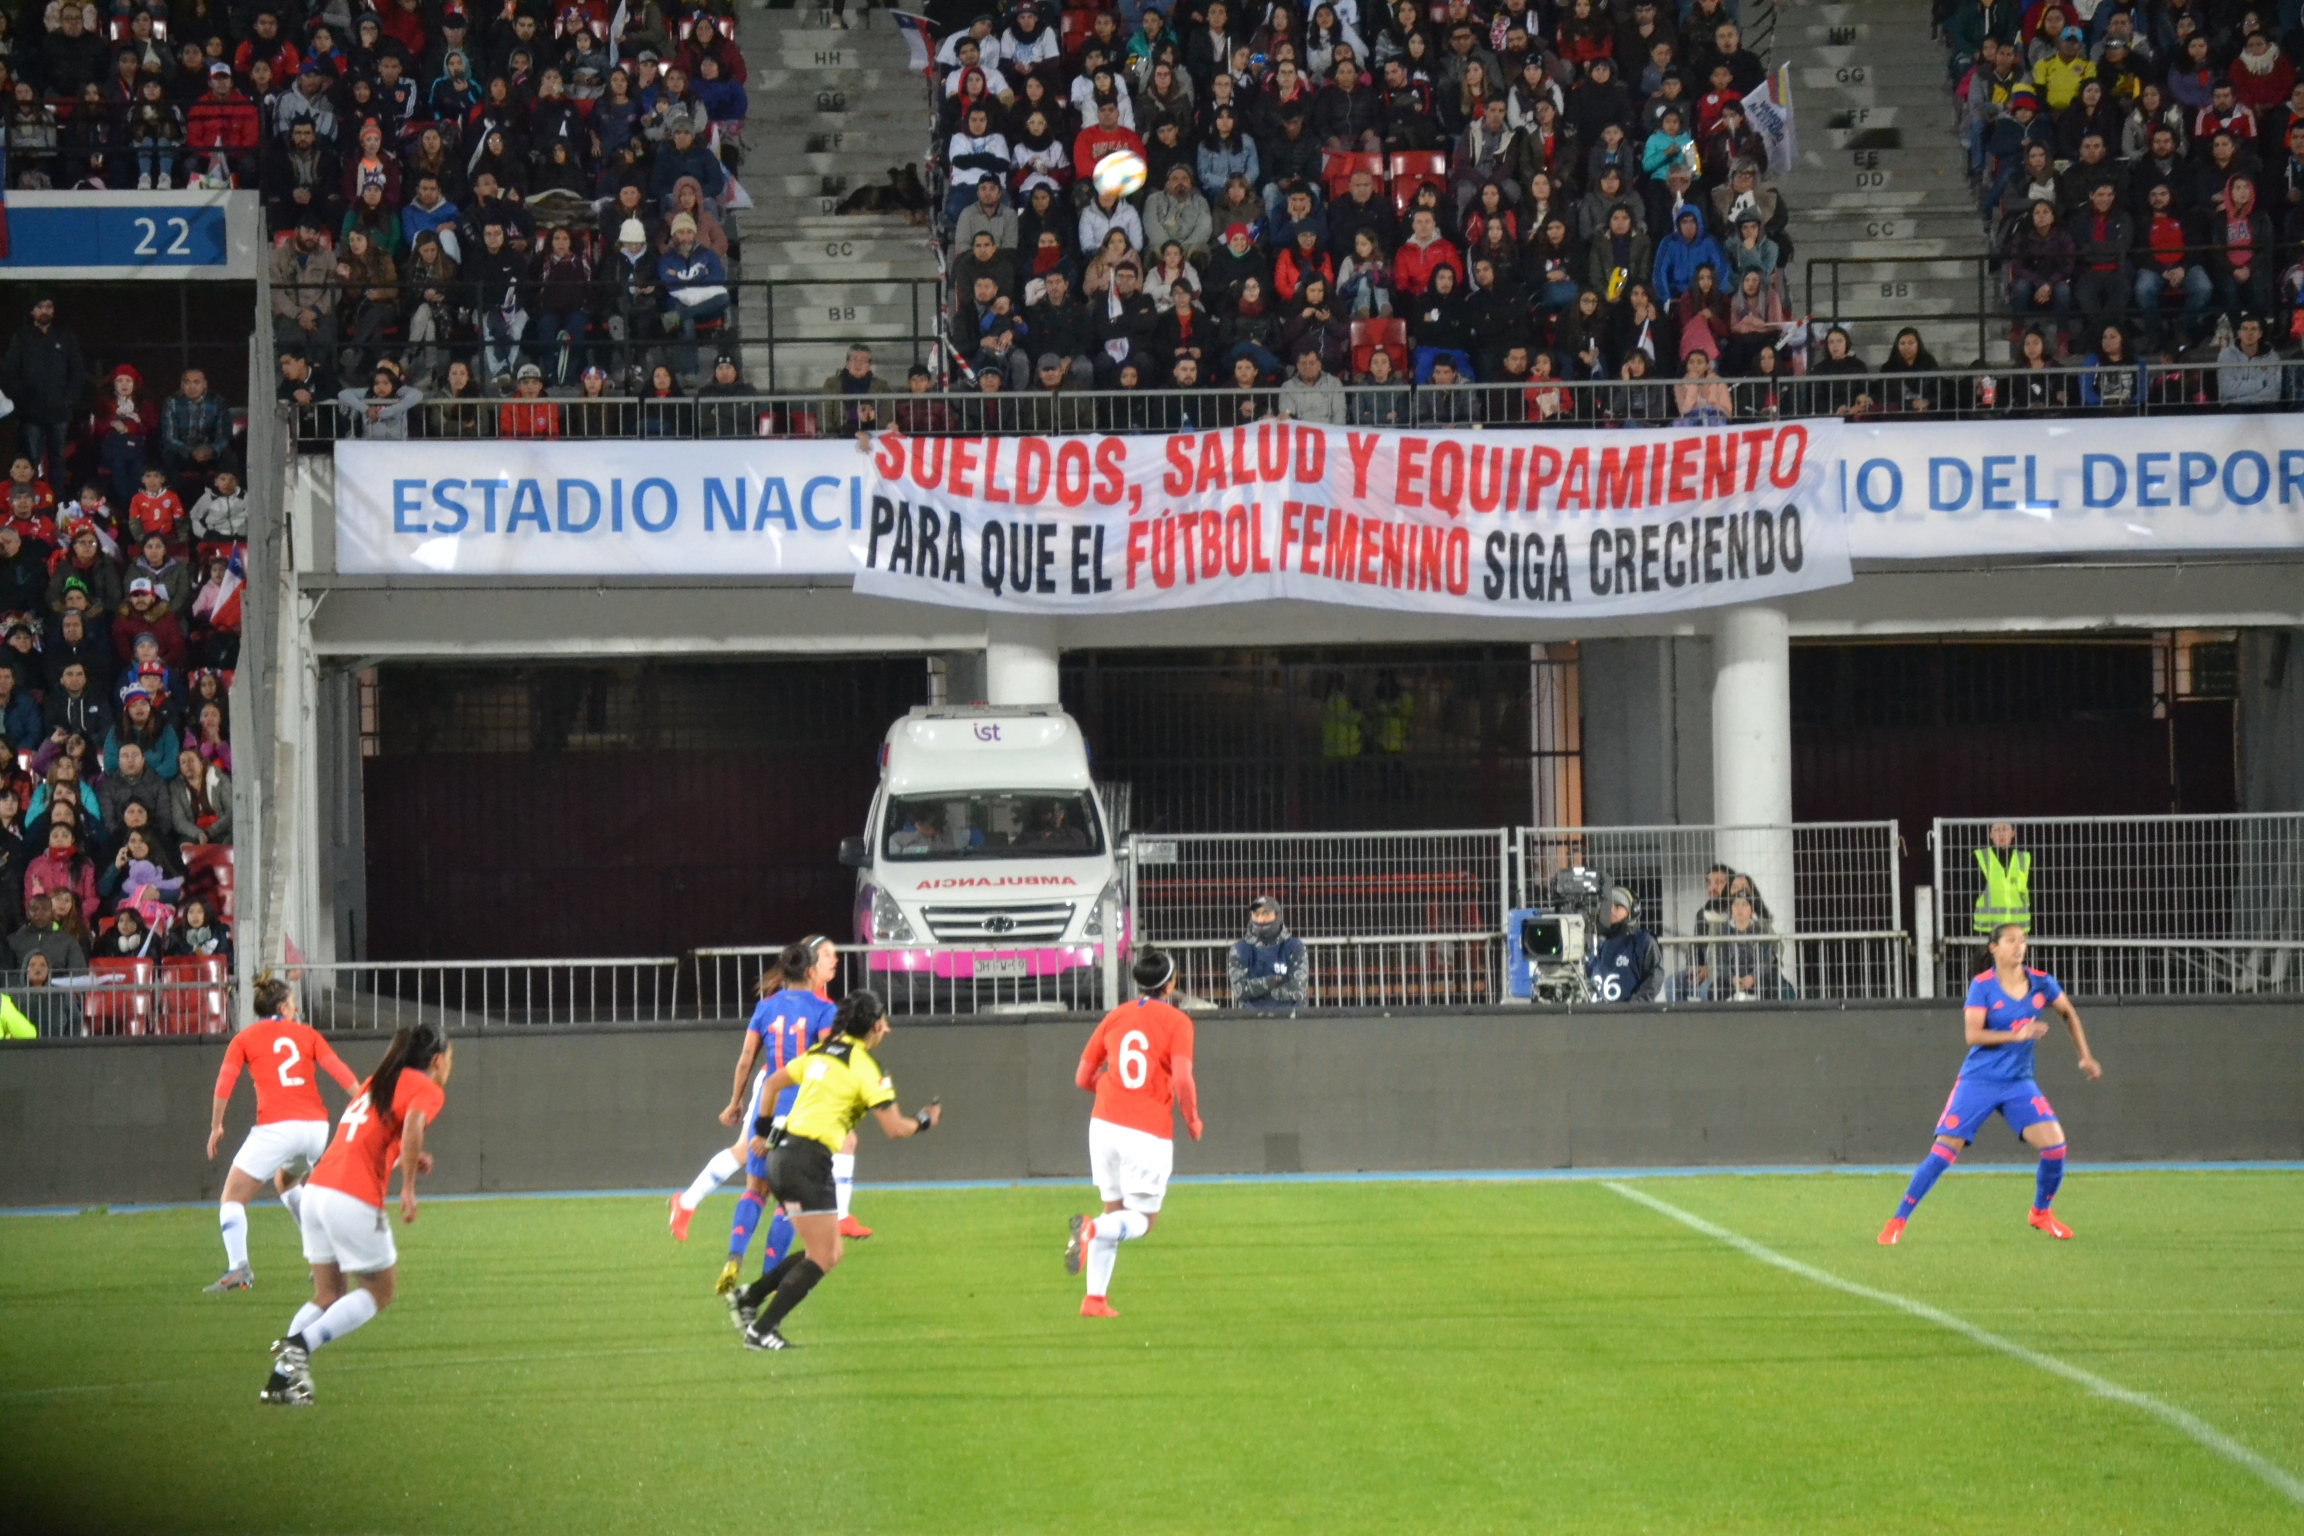 A sign on women's rights held in stadium during women's soccer match.